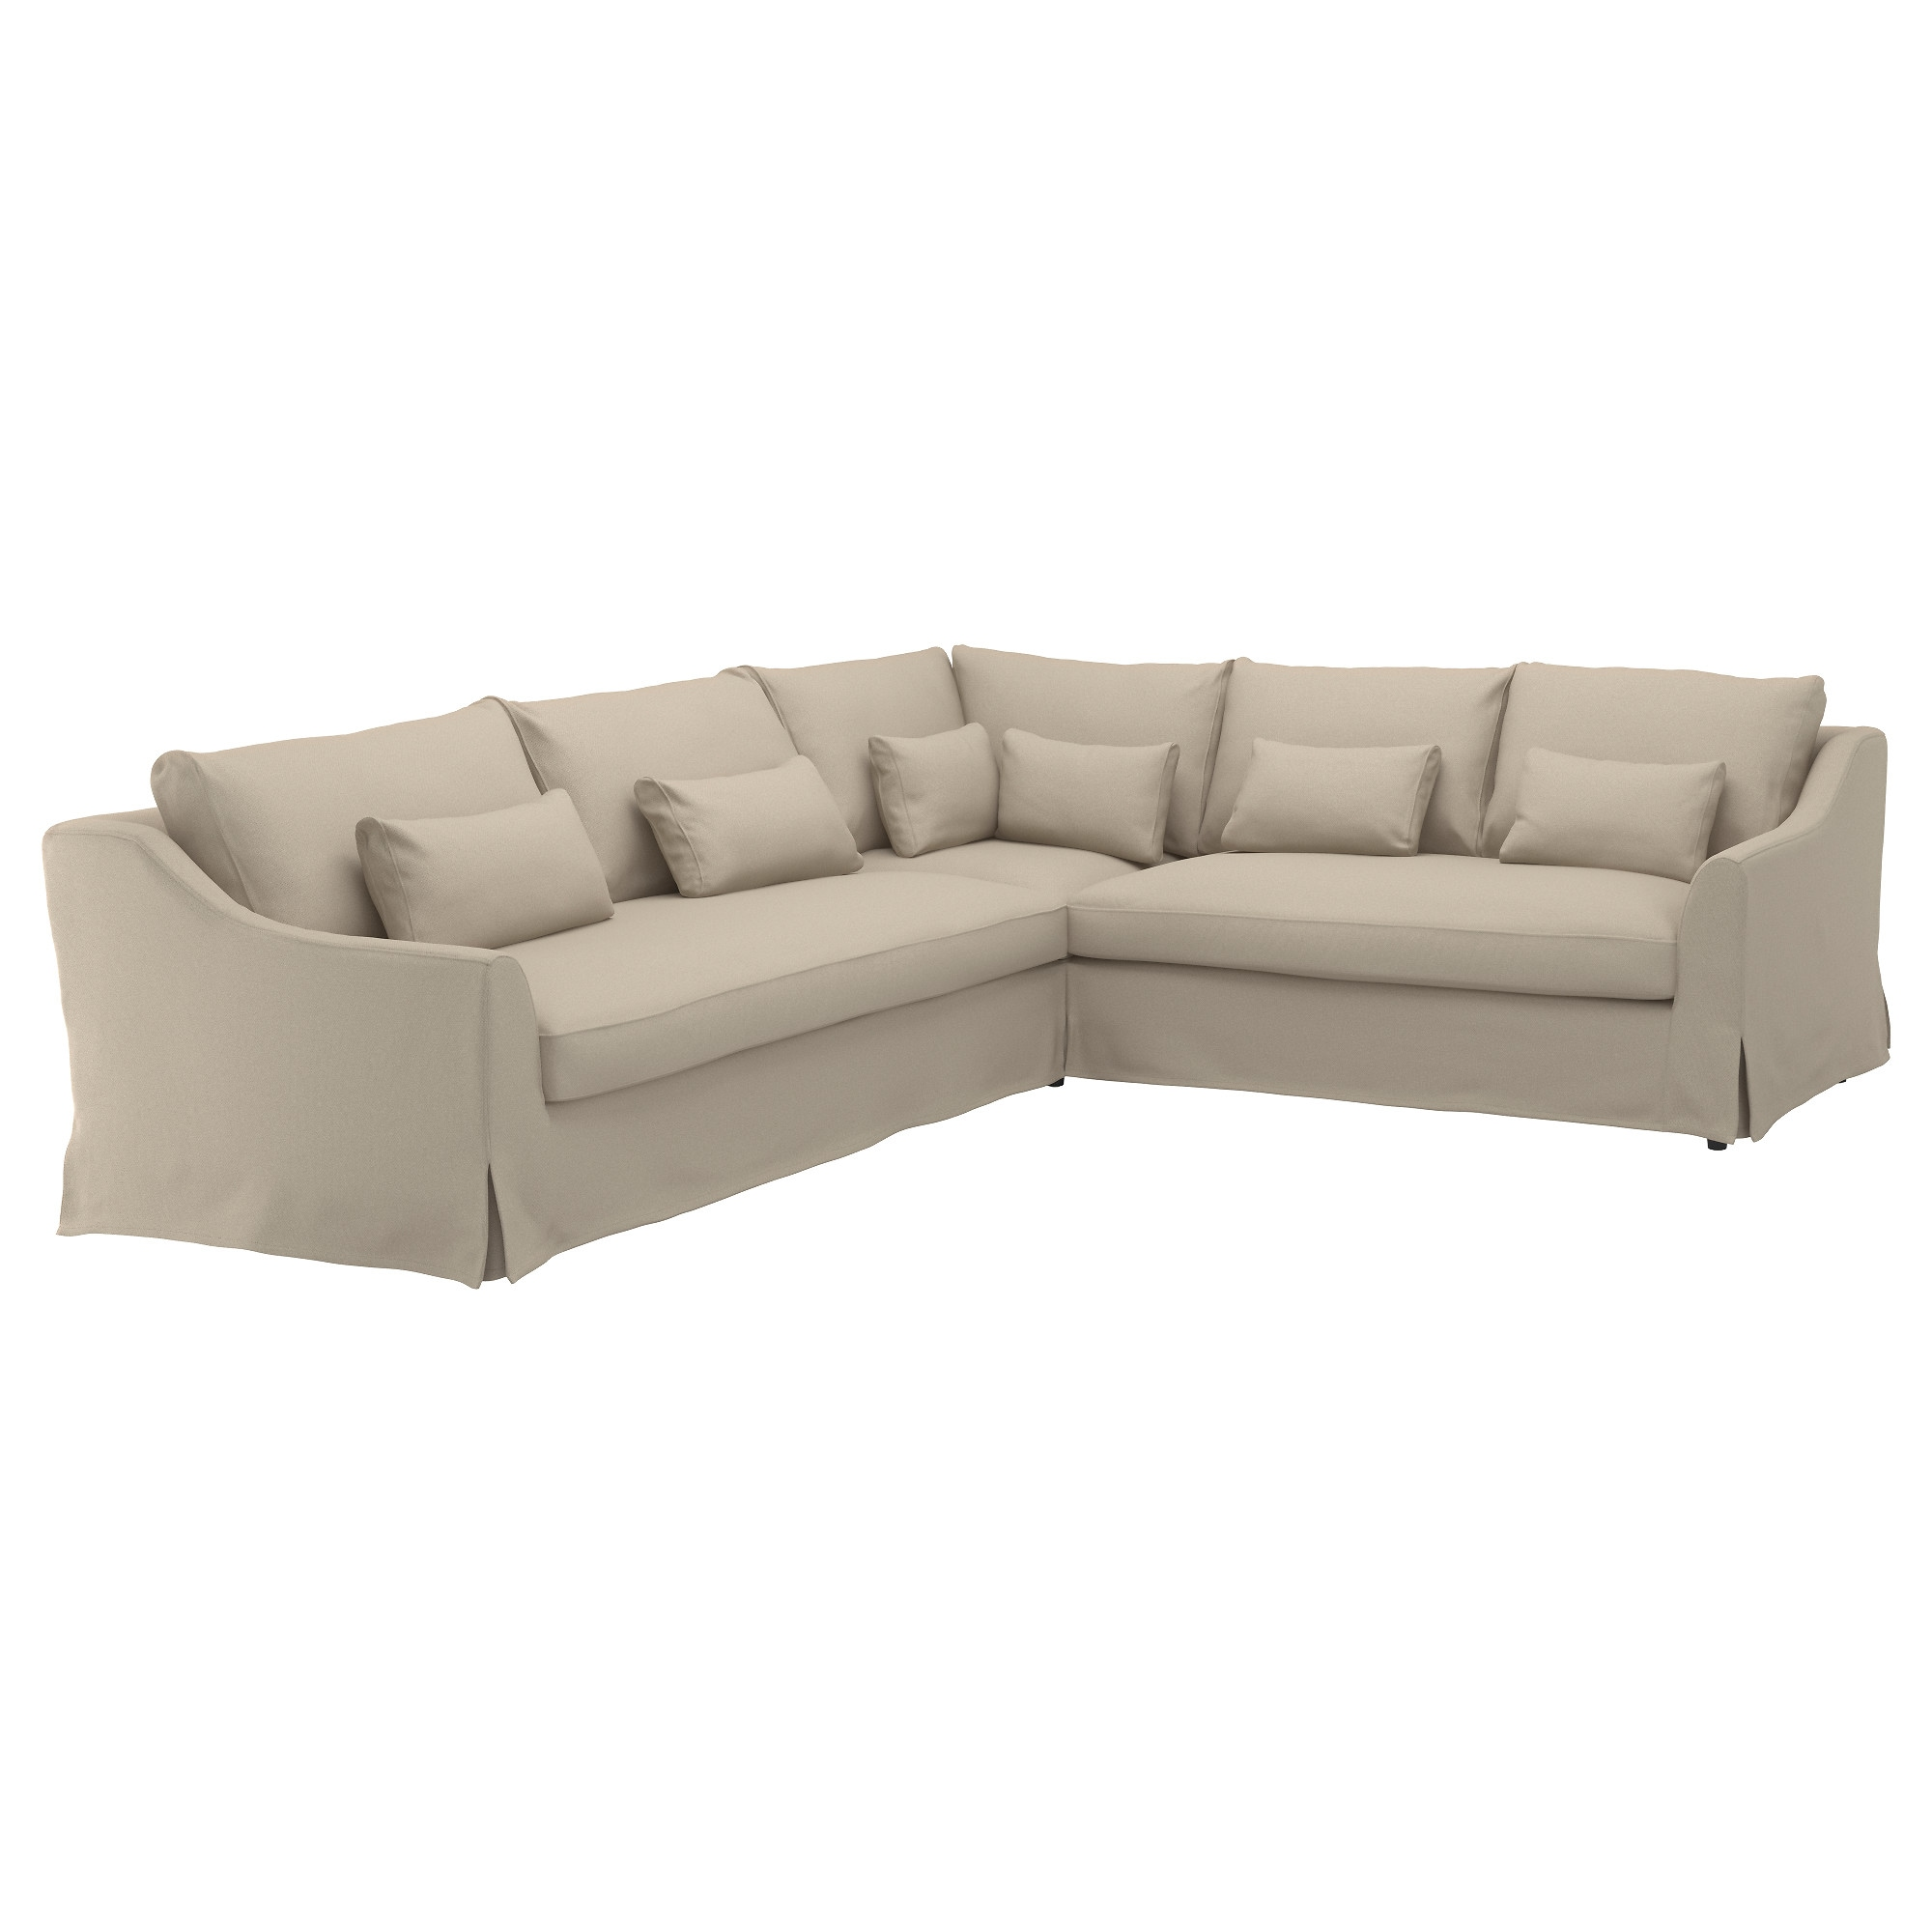 "F""RL–V Sectional 5 seat sofa left Flodafors beige IKEA"